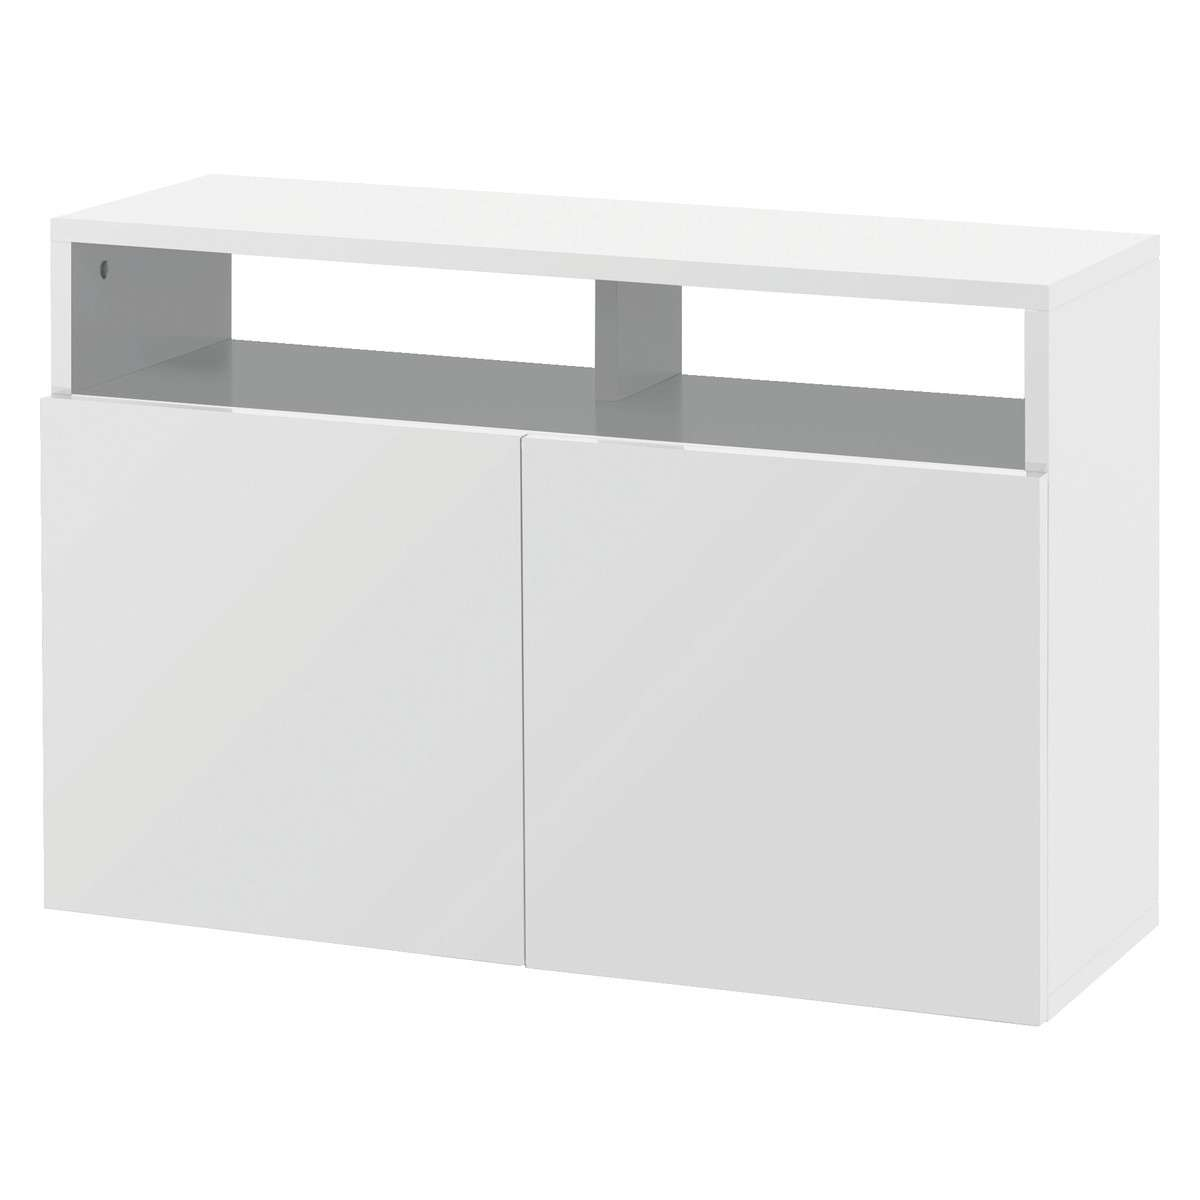 Kubrik White High Gloss Small Sideboard | Buy Now At Habitat Uk Inside Small Low Sideboards (View 10 of 20)